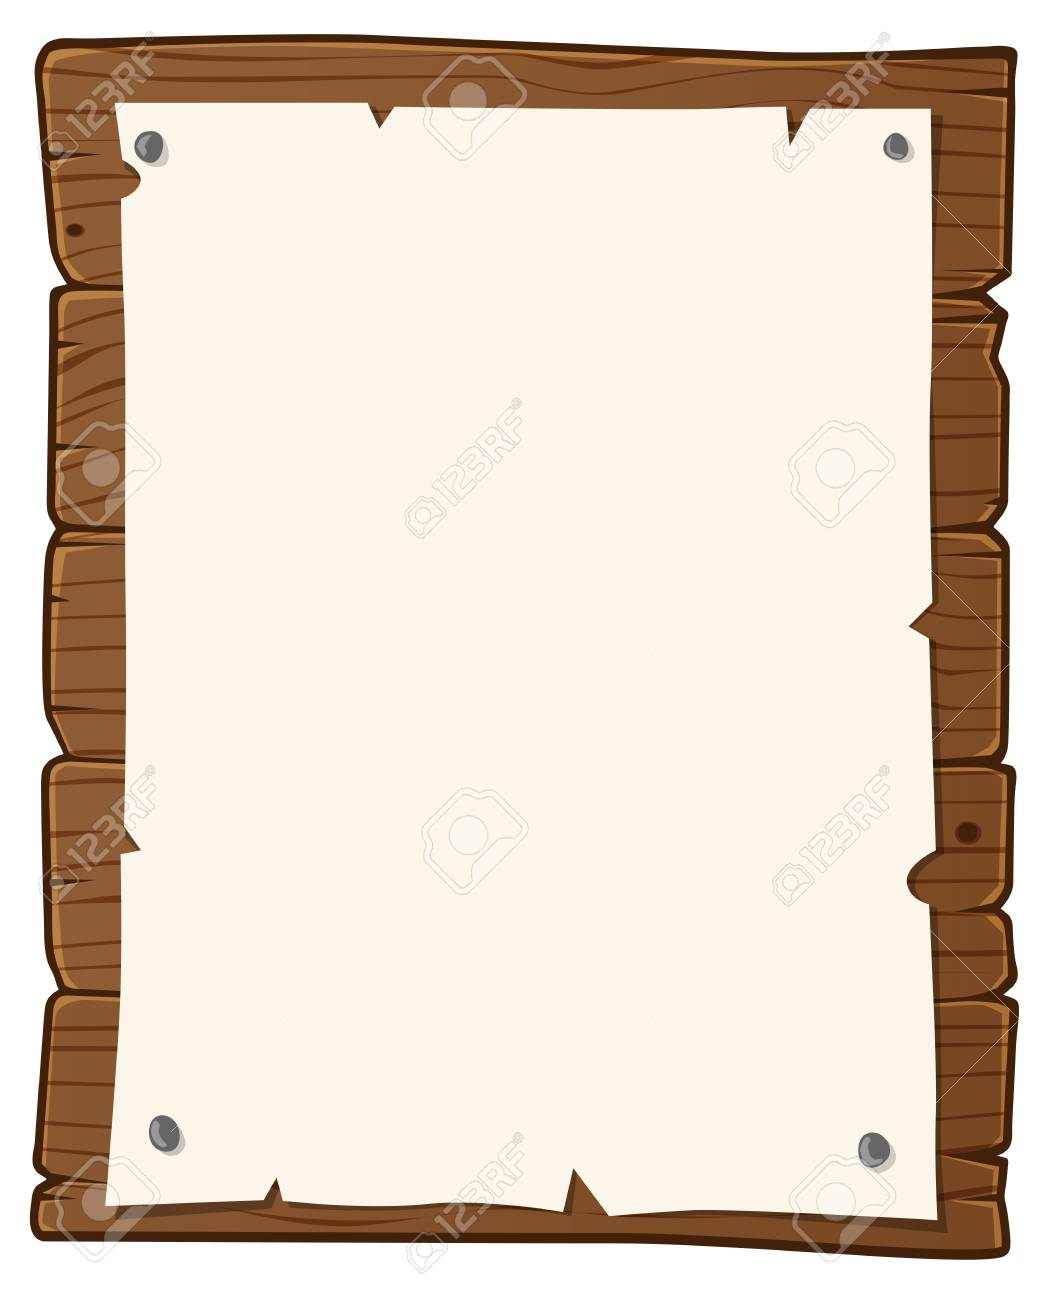 hight resolution of vector wooden bulletin board with paper for writing text